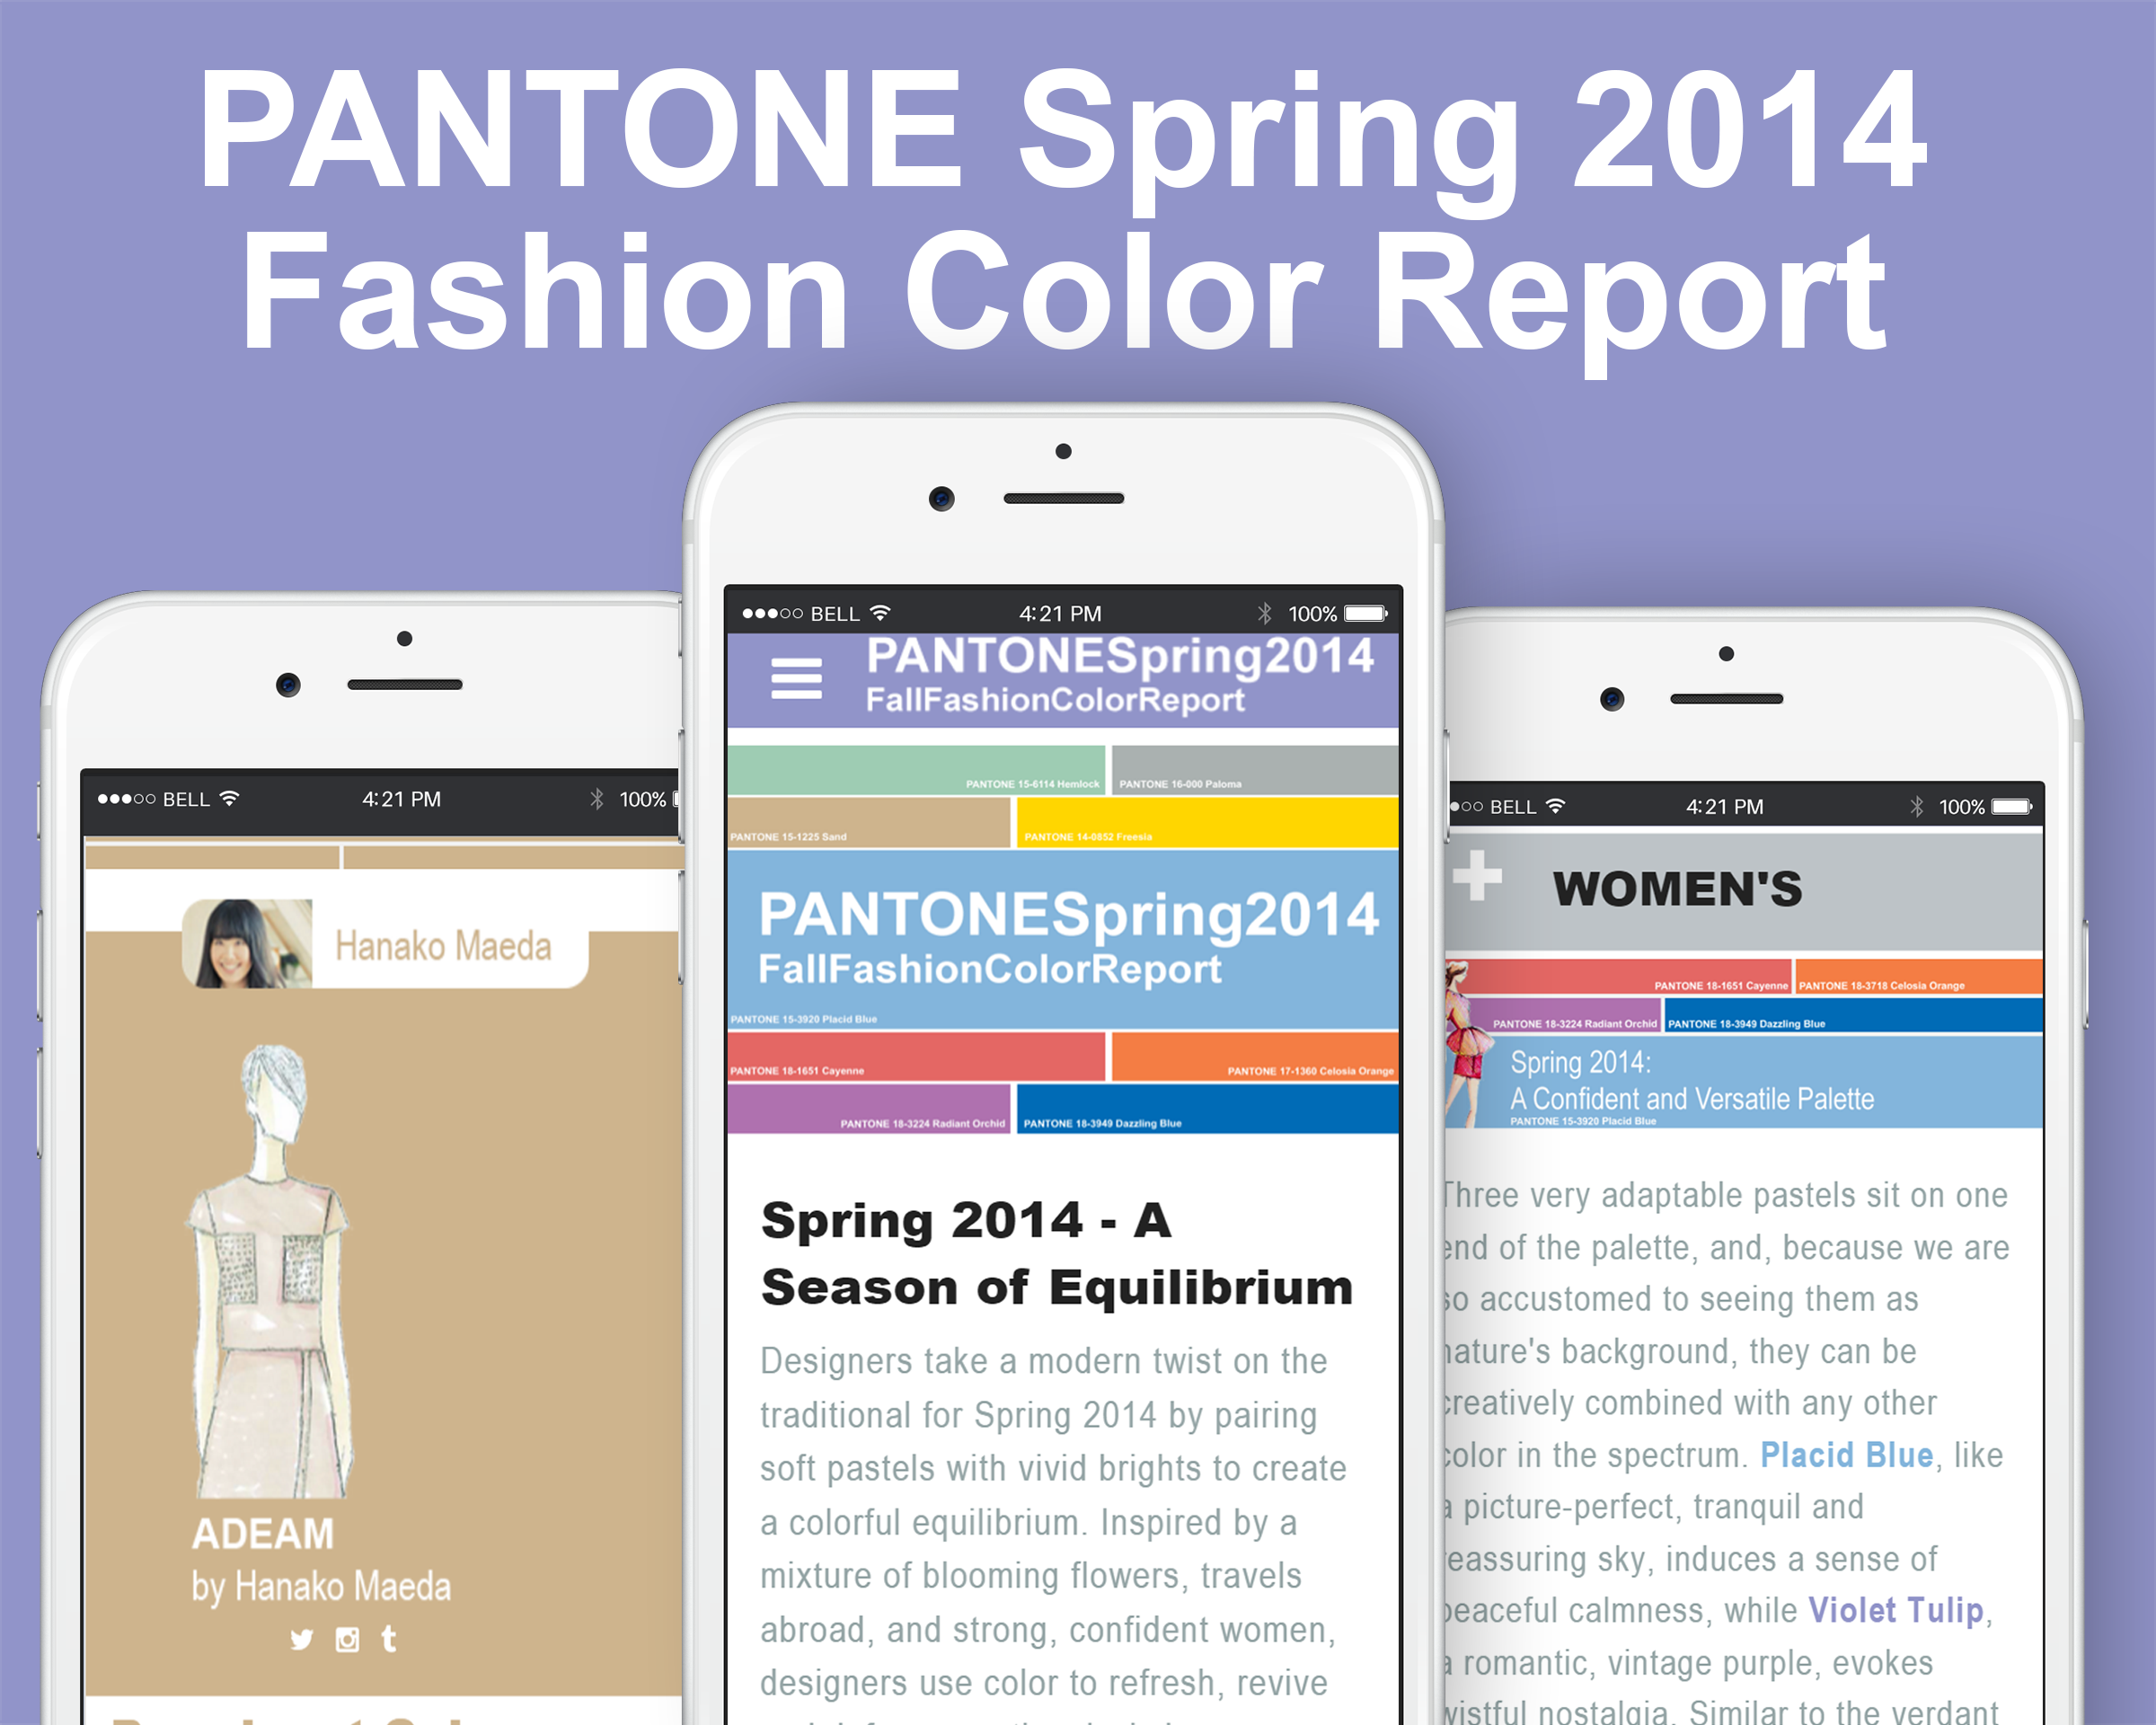 Pantone Spring 2014 - Fashion Color Report